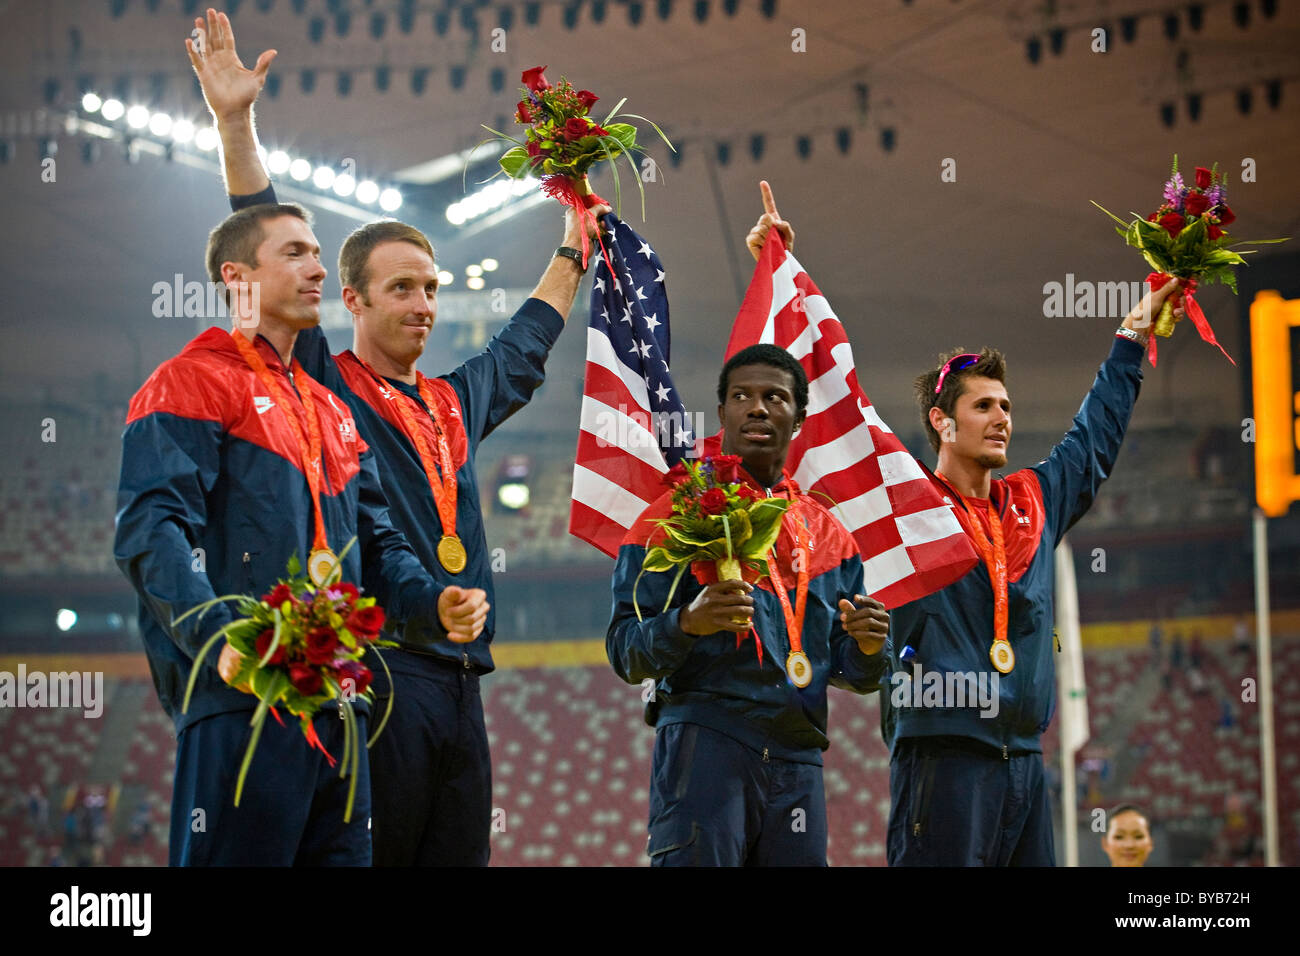 USA team celebrate on the podium with their gold medals after victory in the men's T44 4x100m final relay race - Stock Image